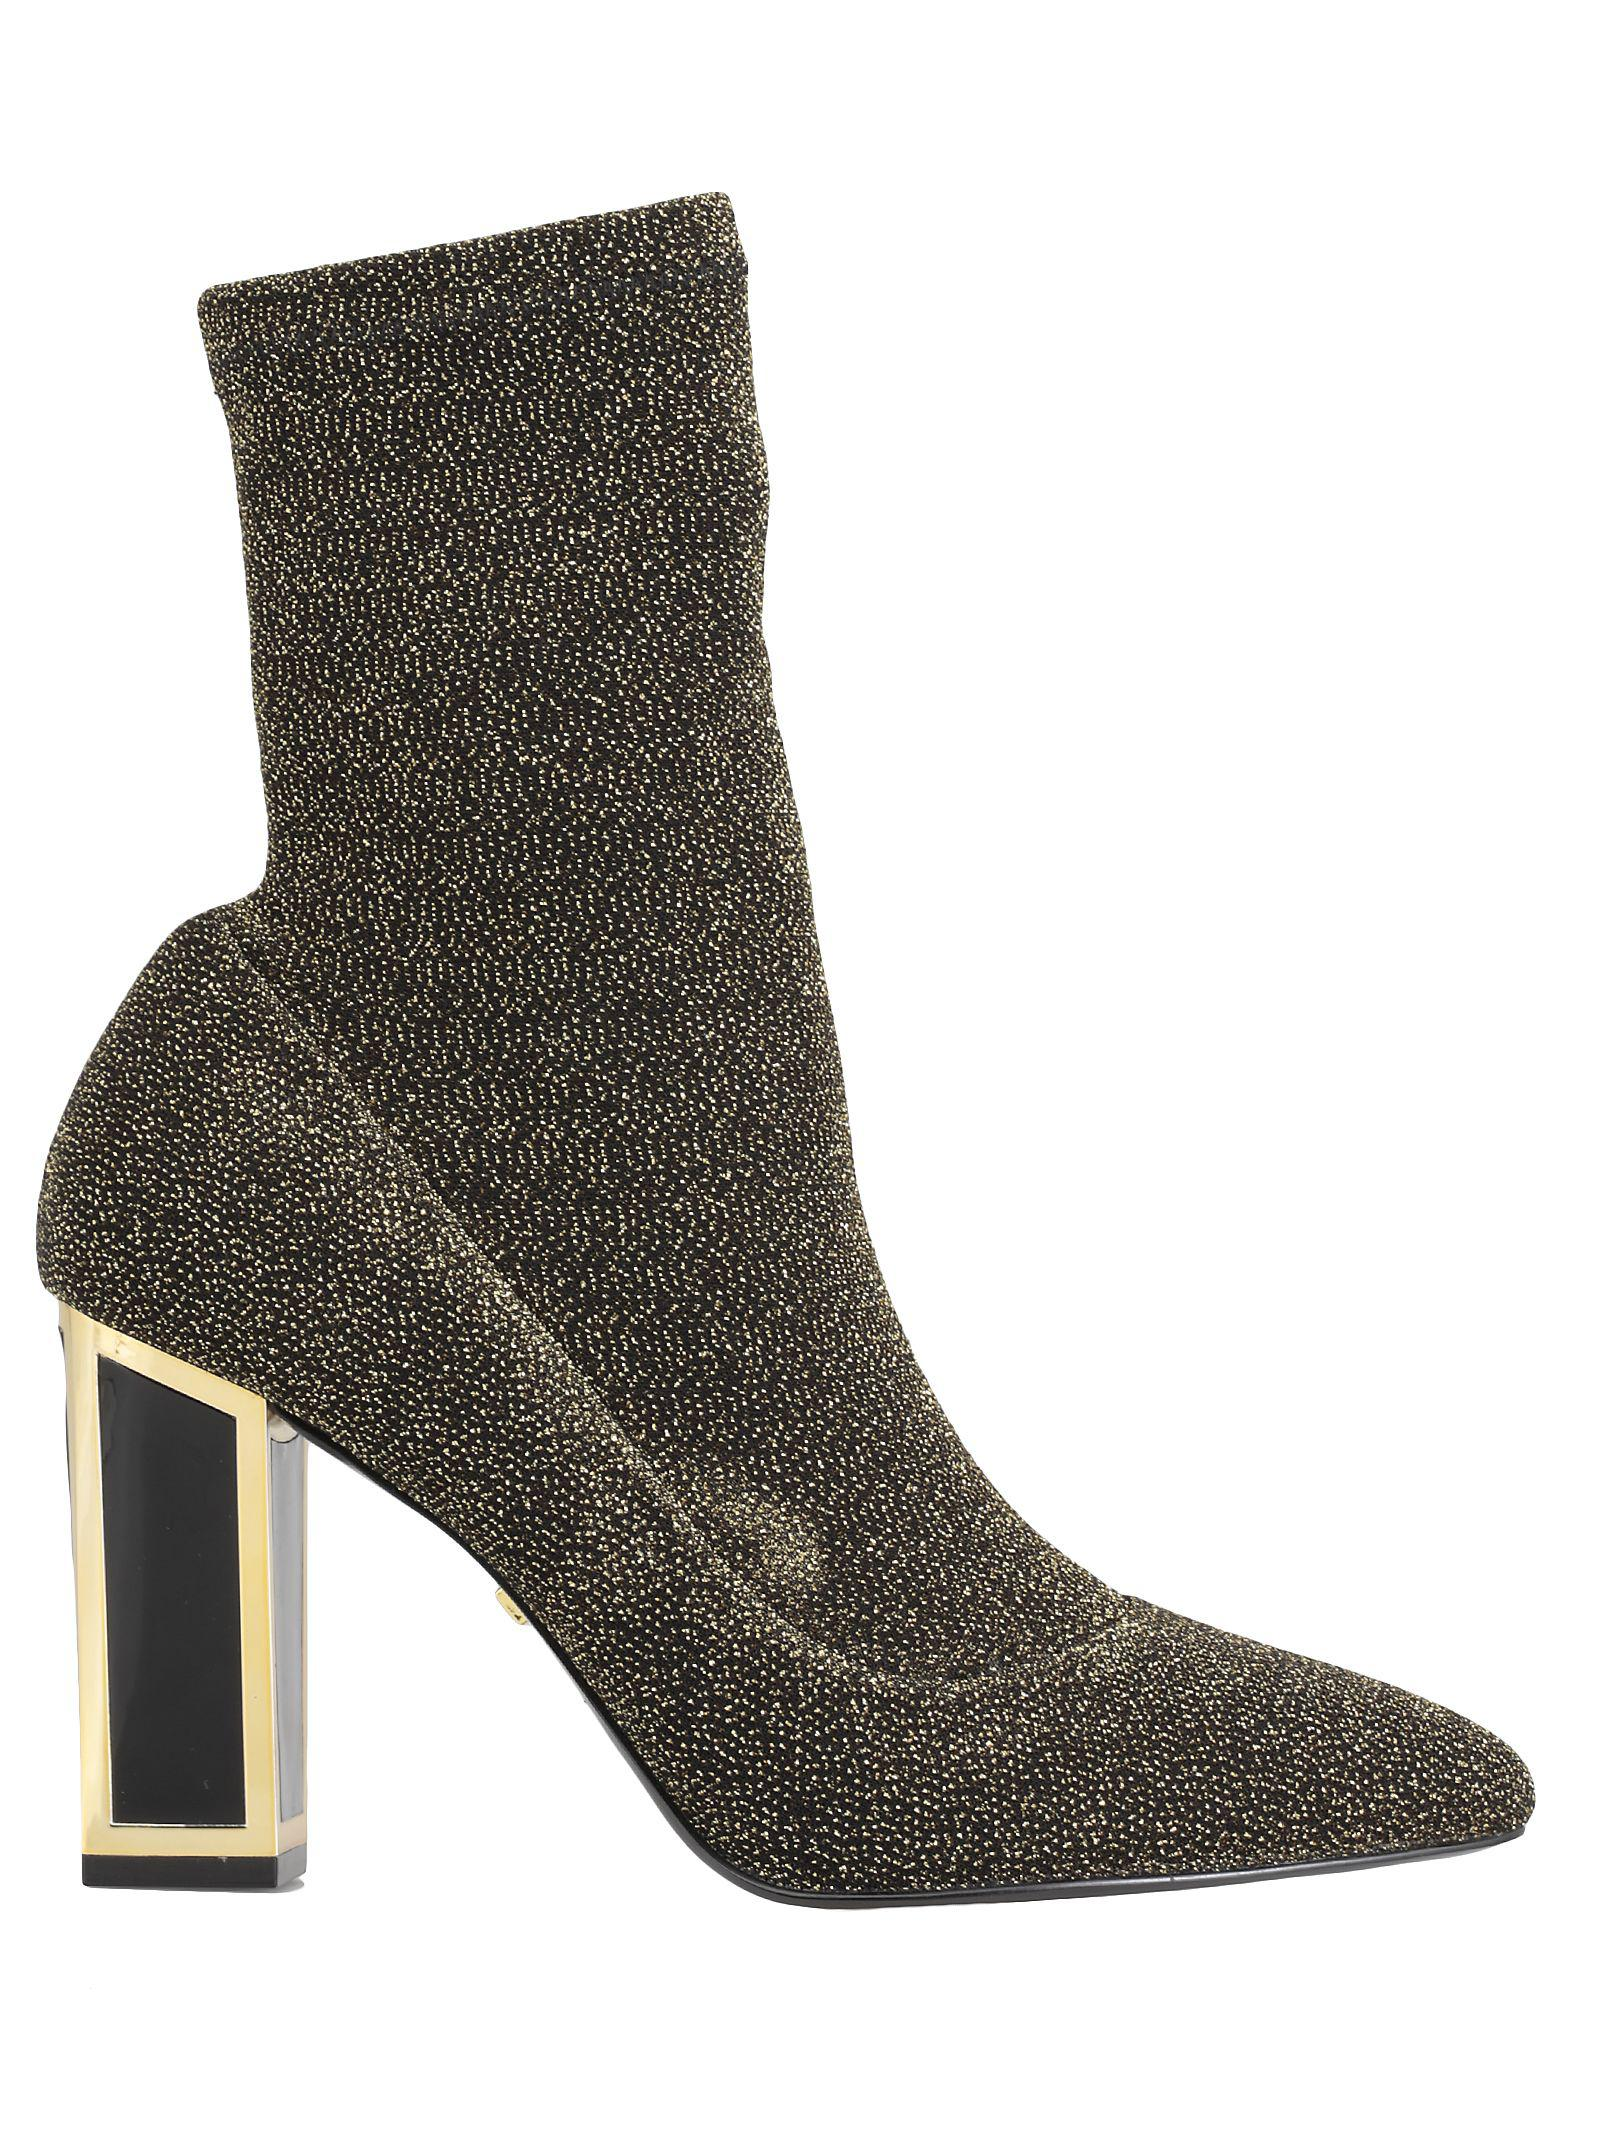 Kat Maconie Alexis Ankle Boot In Gold